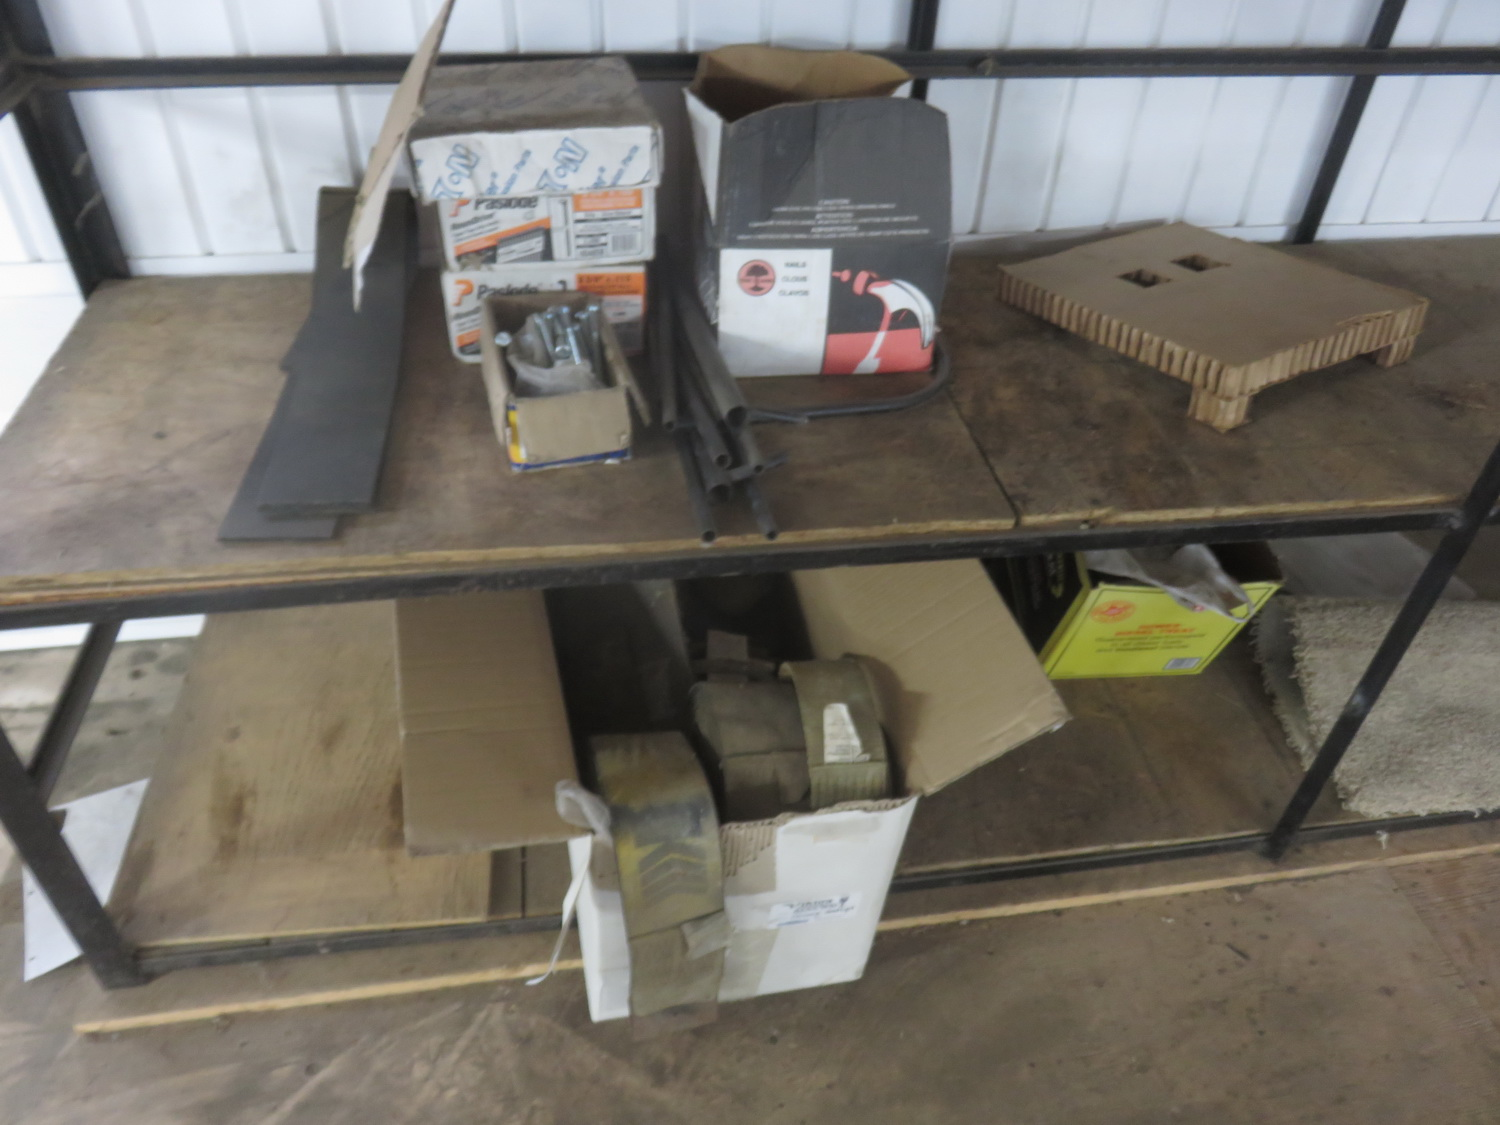 LOT - STEEL + WOOD SHELVING UNIT W/ STRAPS + RUBBER PADDING - Image 2 of 2